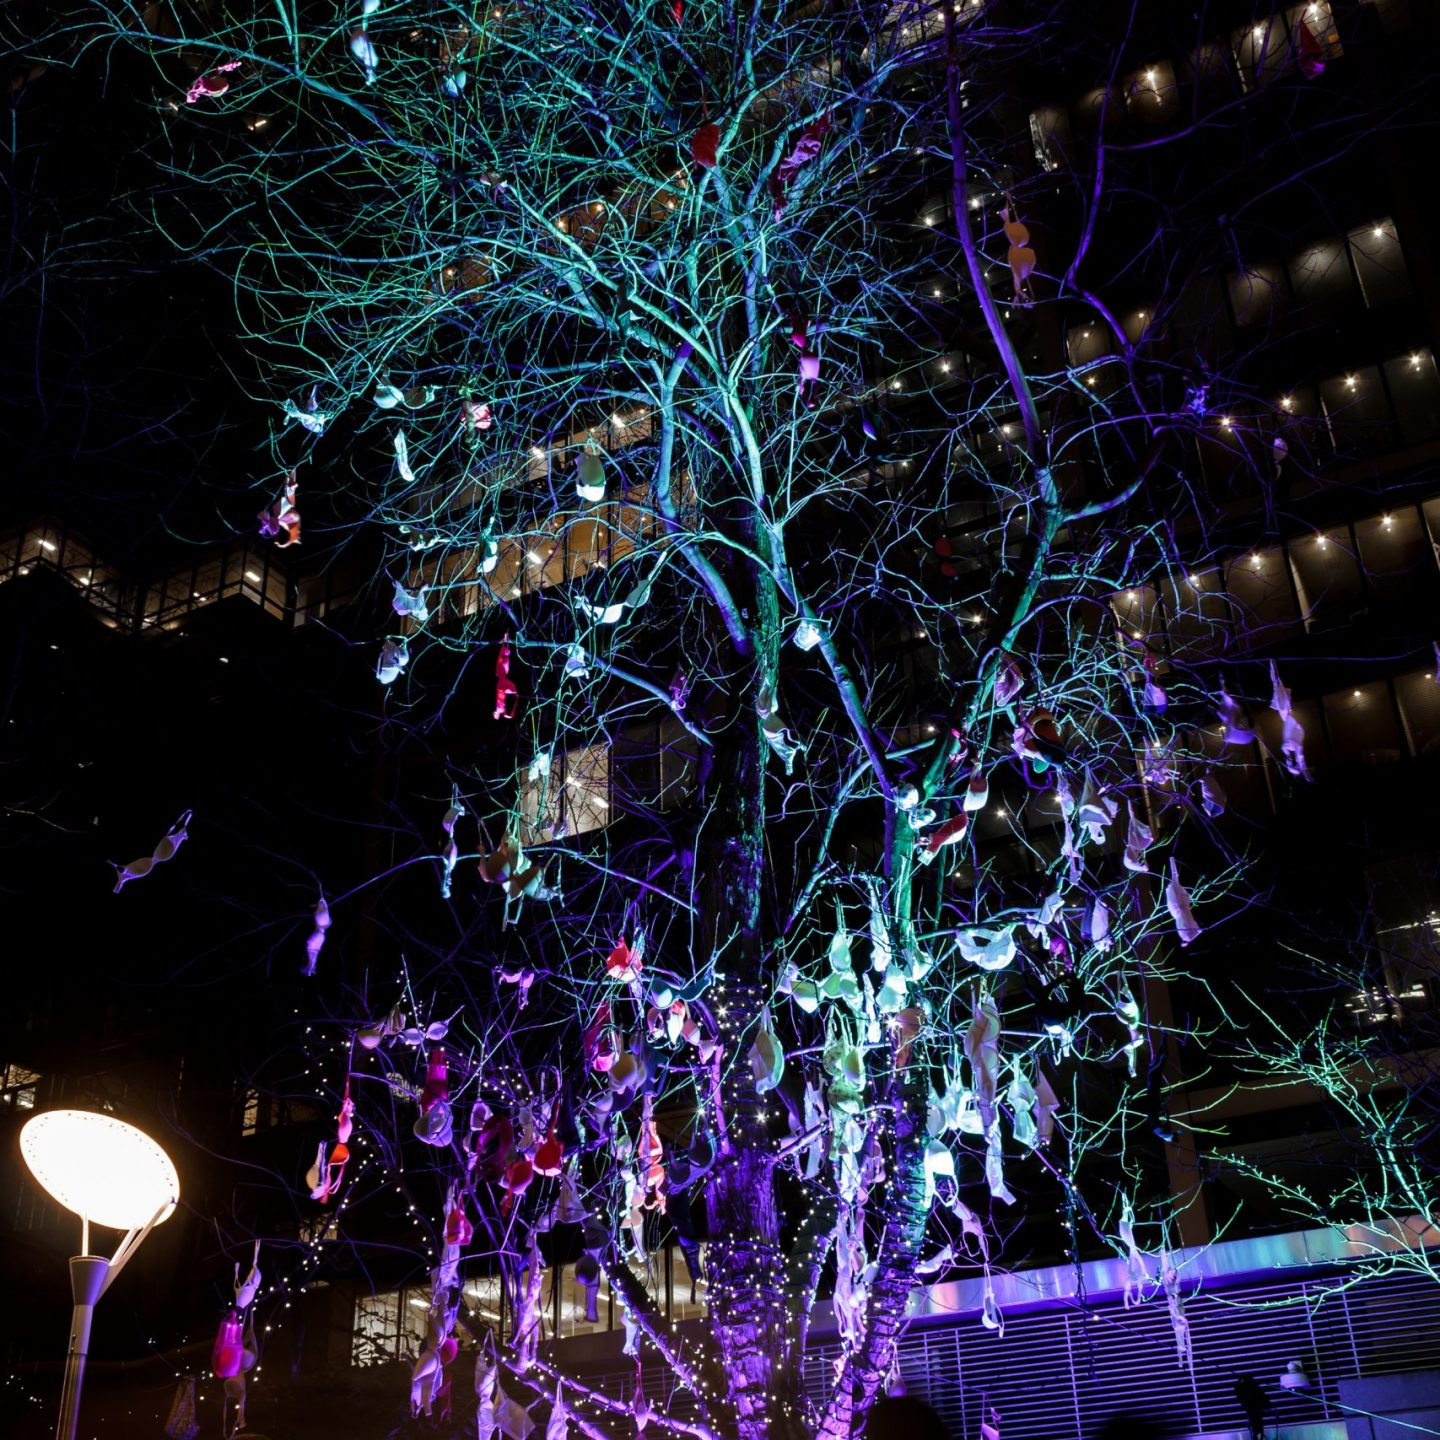 Canary Wharf Winter Lights 2020 - The Bra Tree for Breast Cancer Now